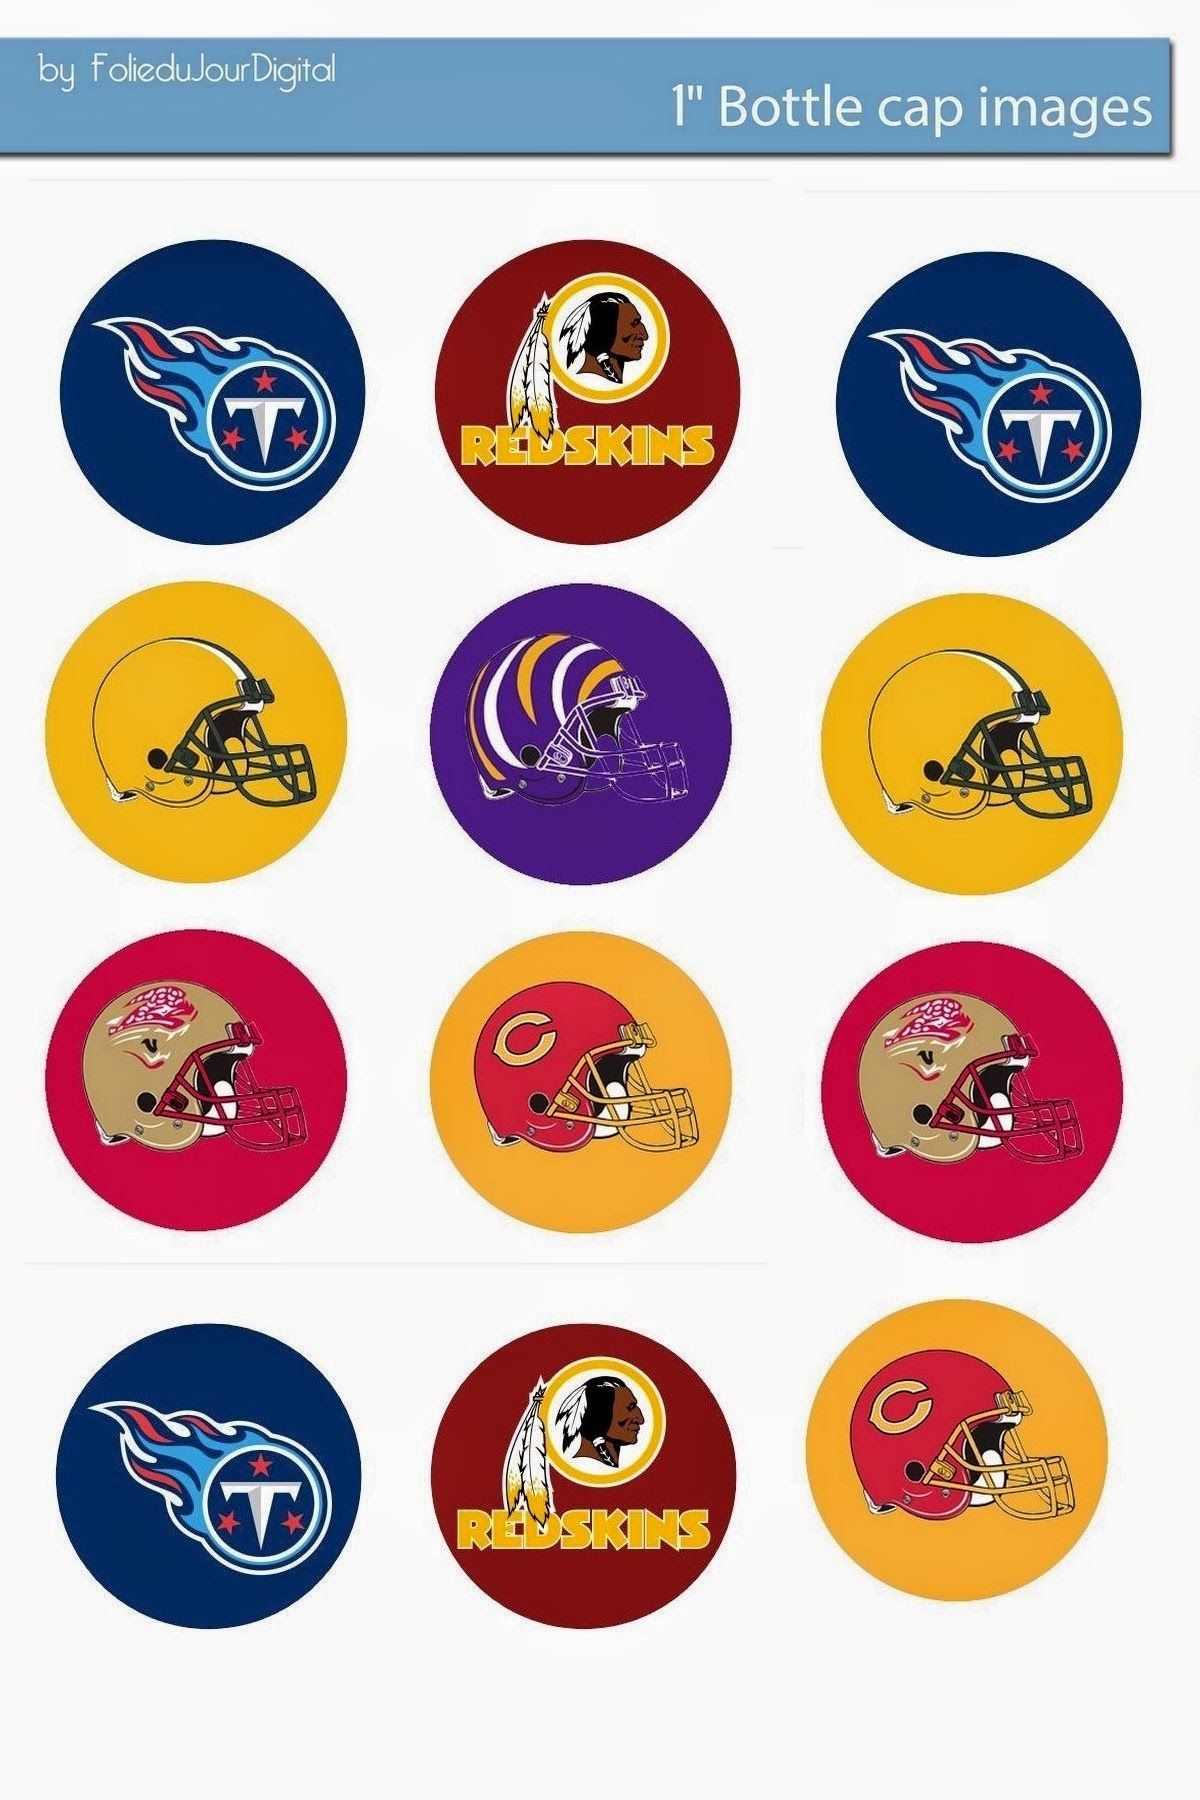 Free Bottle Cap Images All National League Football Teams Free 1 Inch Digital Bottle Cap Images Nlf Bottle Cap Images Bottle Cap Bottle Cap Crafts